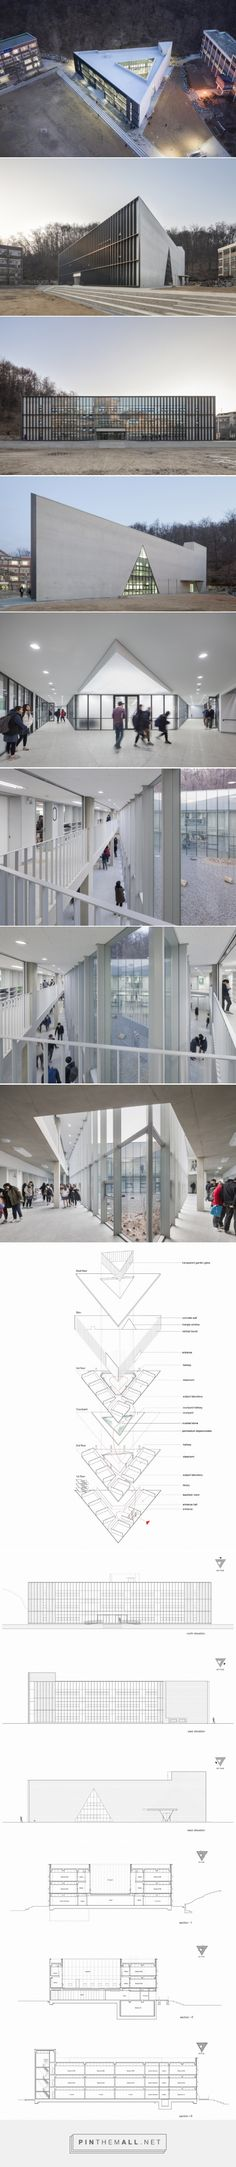 DH triangle school in korea completed by nameless architecture - created via http://pinthemall.net